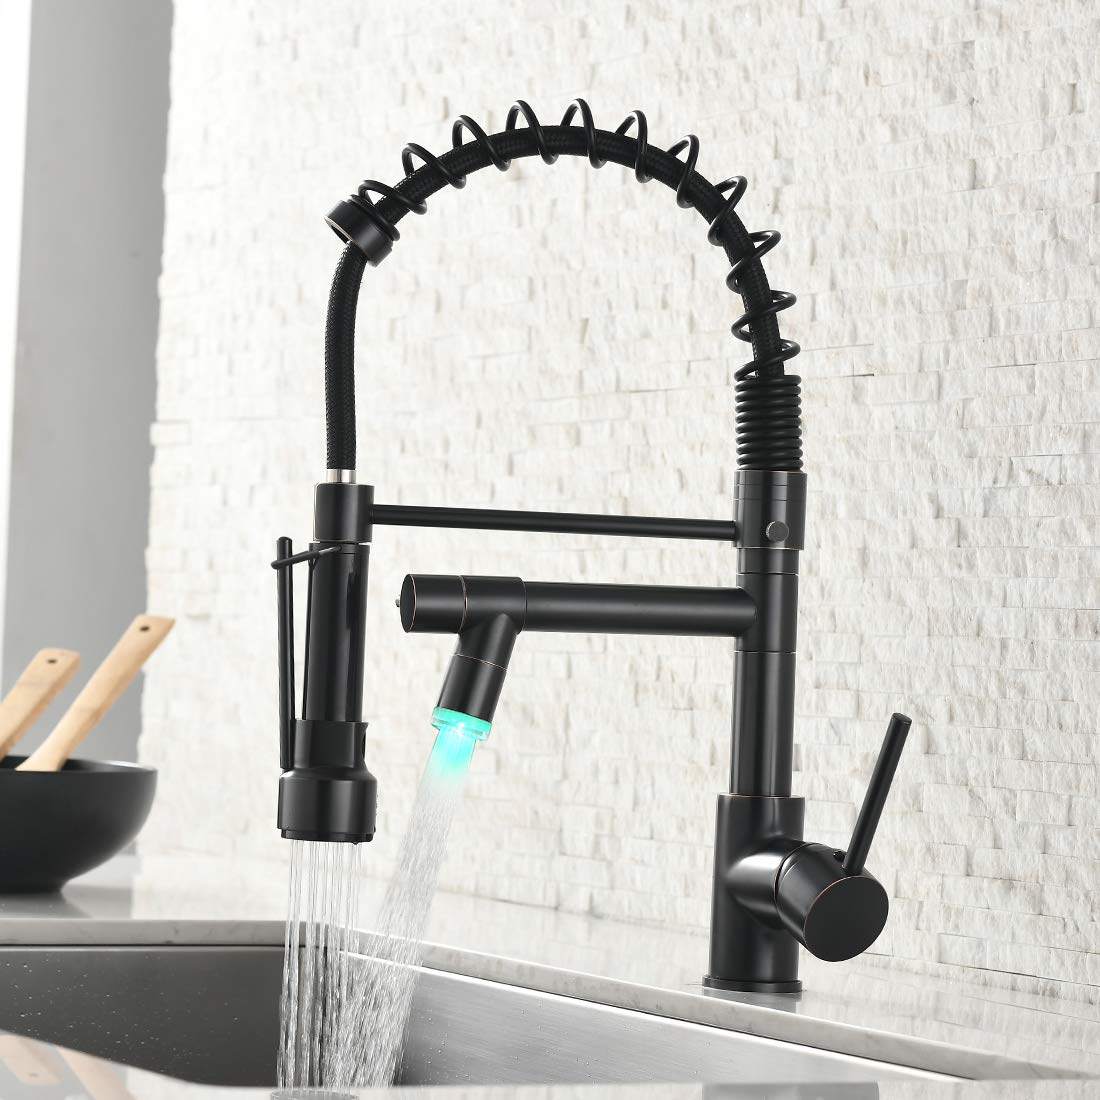 Kitchen Faucets With Pull Down Sprayer Commercial Single Handle Oil Rubbed Bronze Kitchen Sink Faucet With Led Light